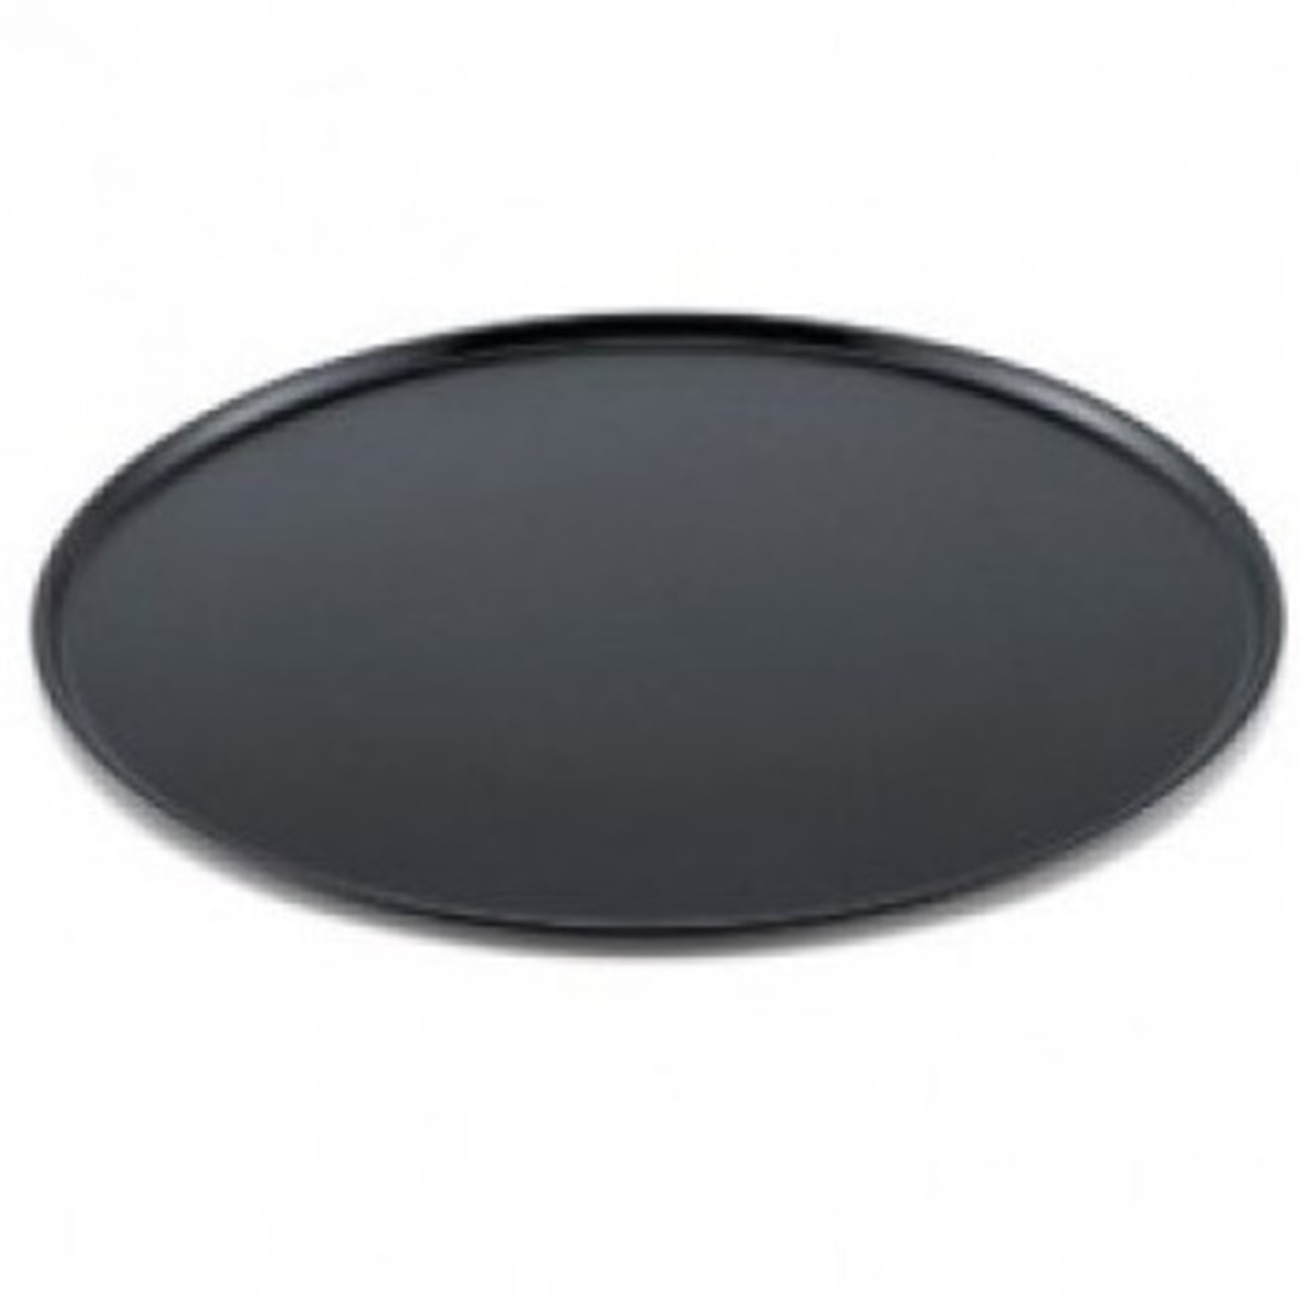 "11"" Non-Stick Pizza Pan"